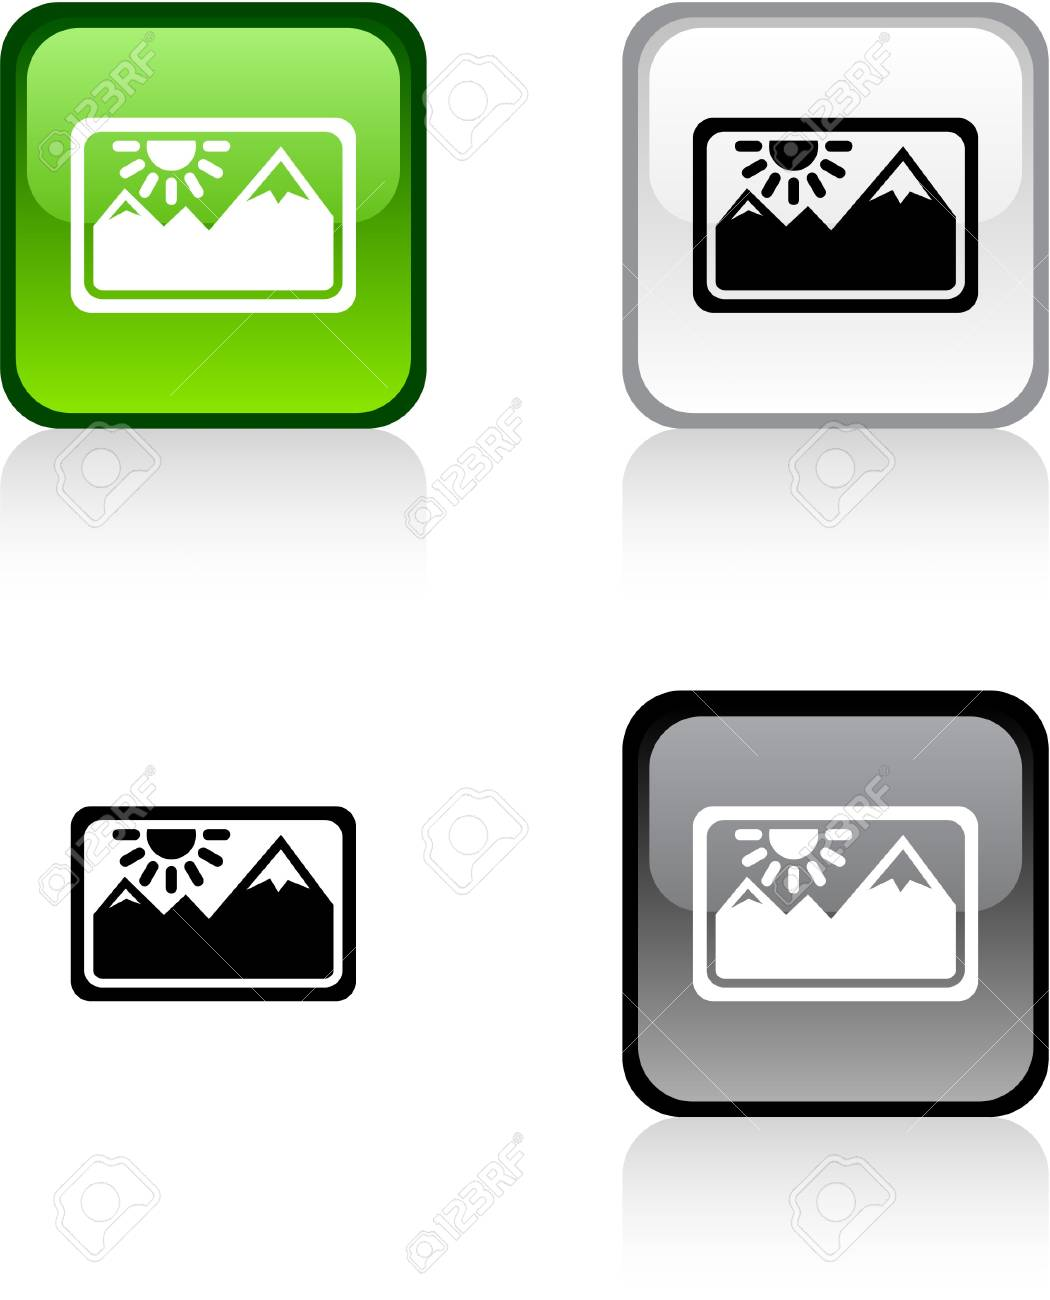 Picture glossy square vibrant buttons. Stock Vector - 7004326